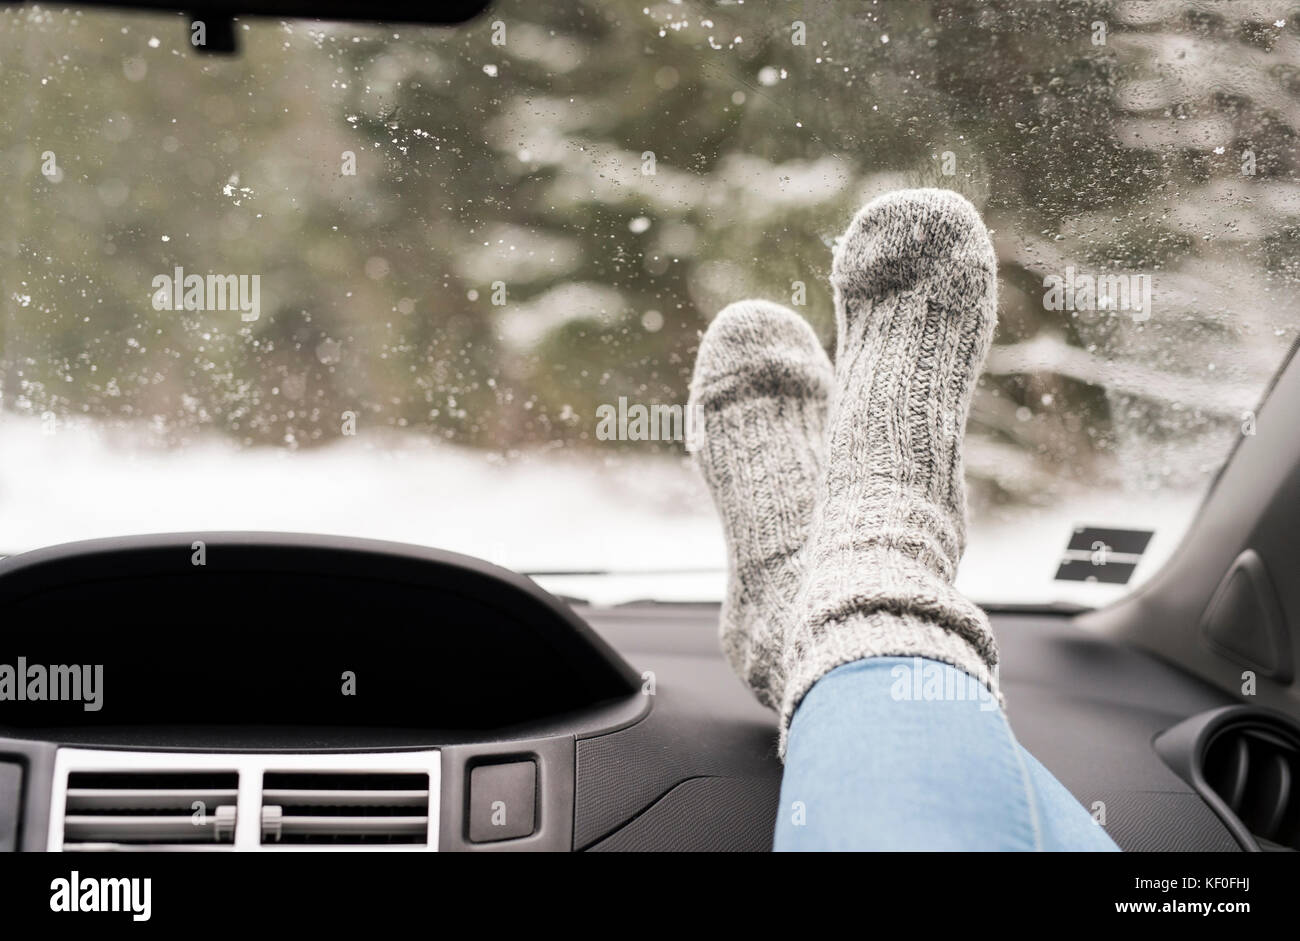 Woman sitting in car with feet up on dashboard - Stock Image